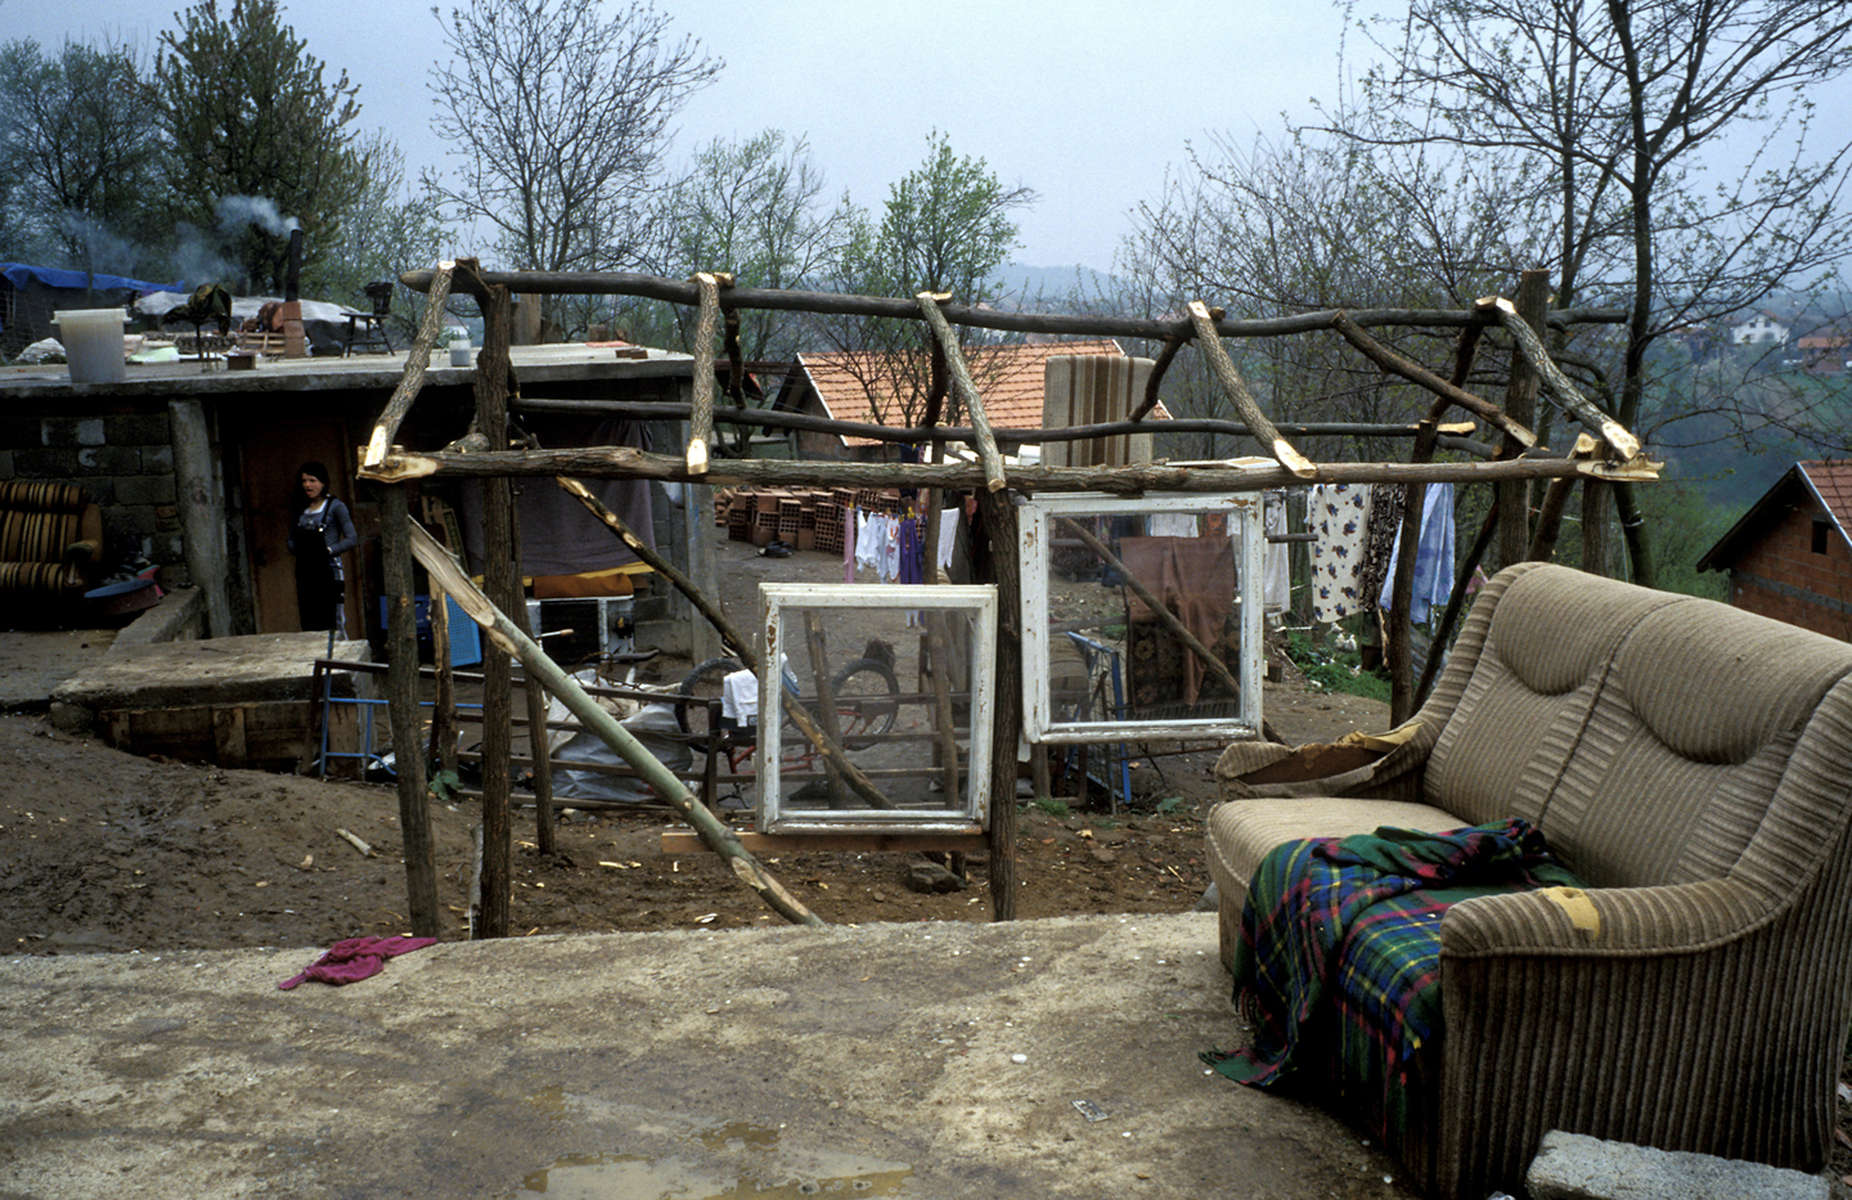 Roma who were \{quote}cleansed\{quote} by Serbs in the early months of the 1992-95 war return to rebuild their village.